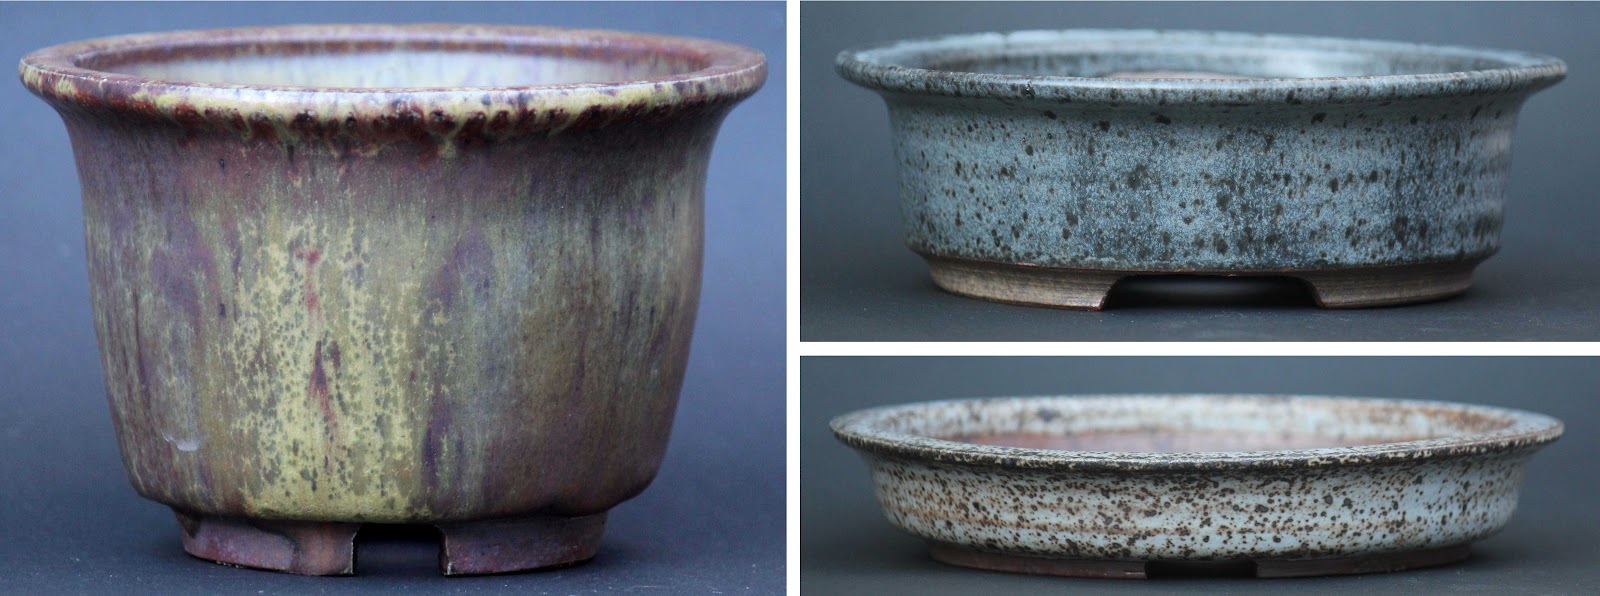 Kigawa39s Bonsai Blog Latest Wood Fired Bonsai Pots